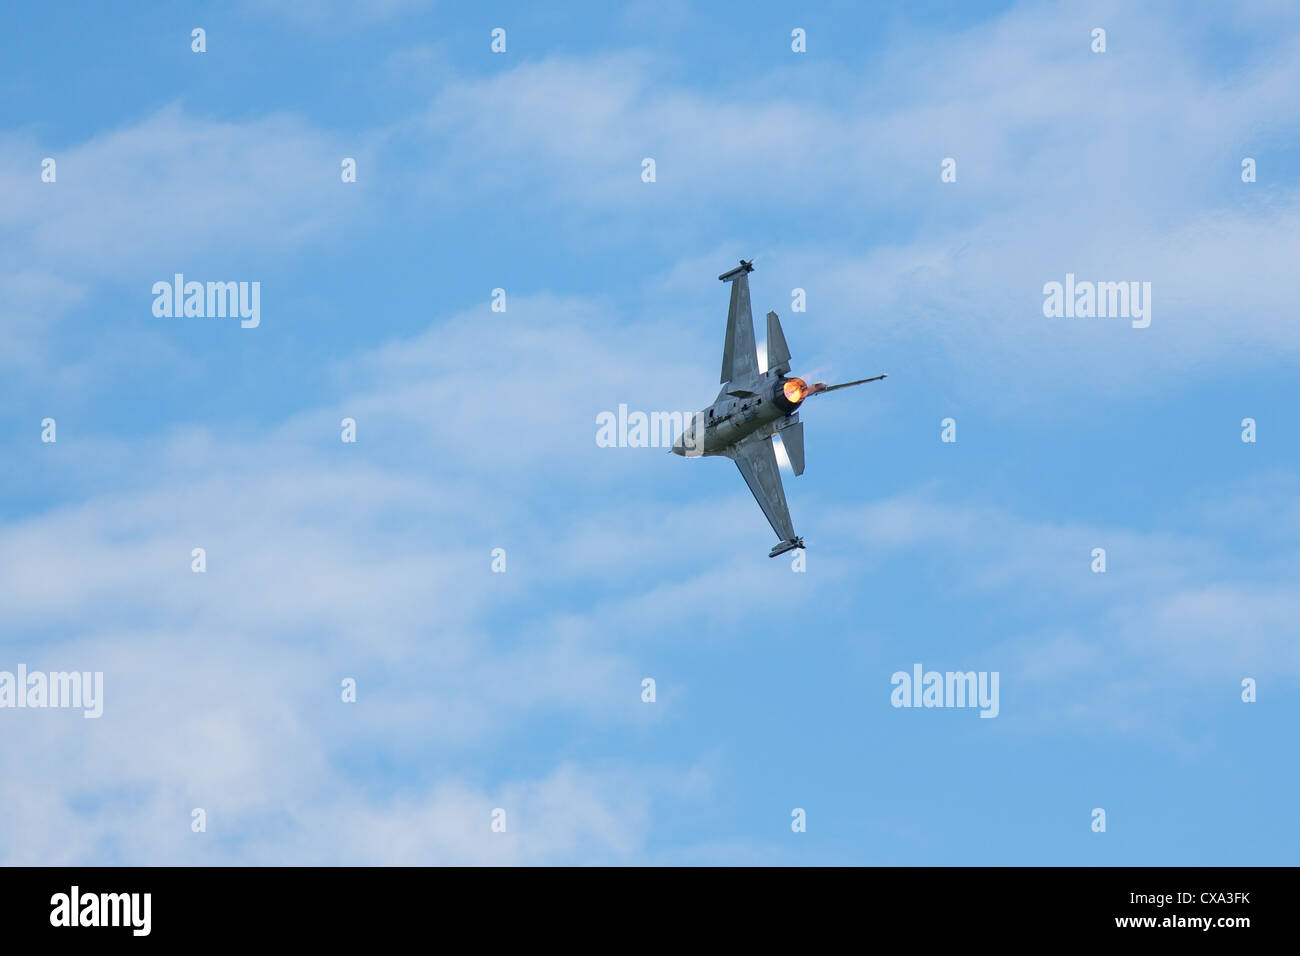 An F-16 figher jet performs at an airshow Stock Photo